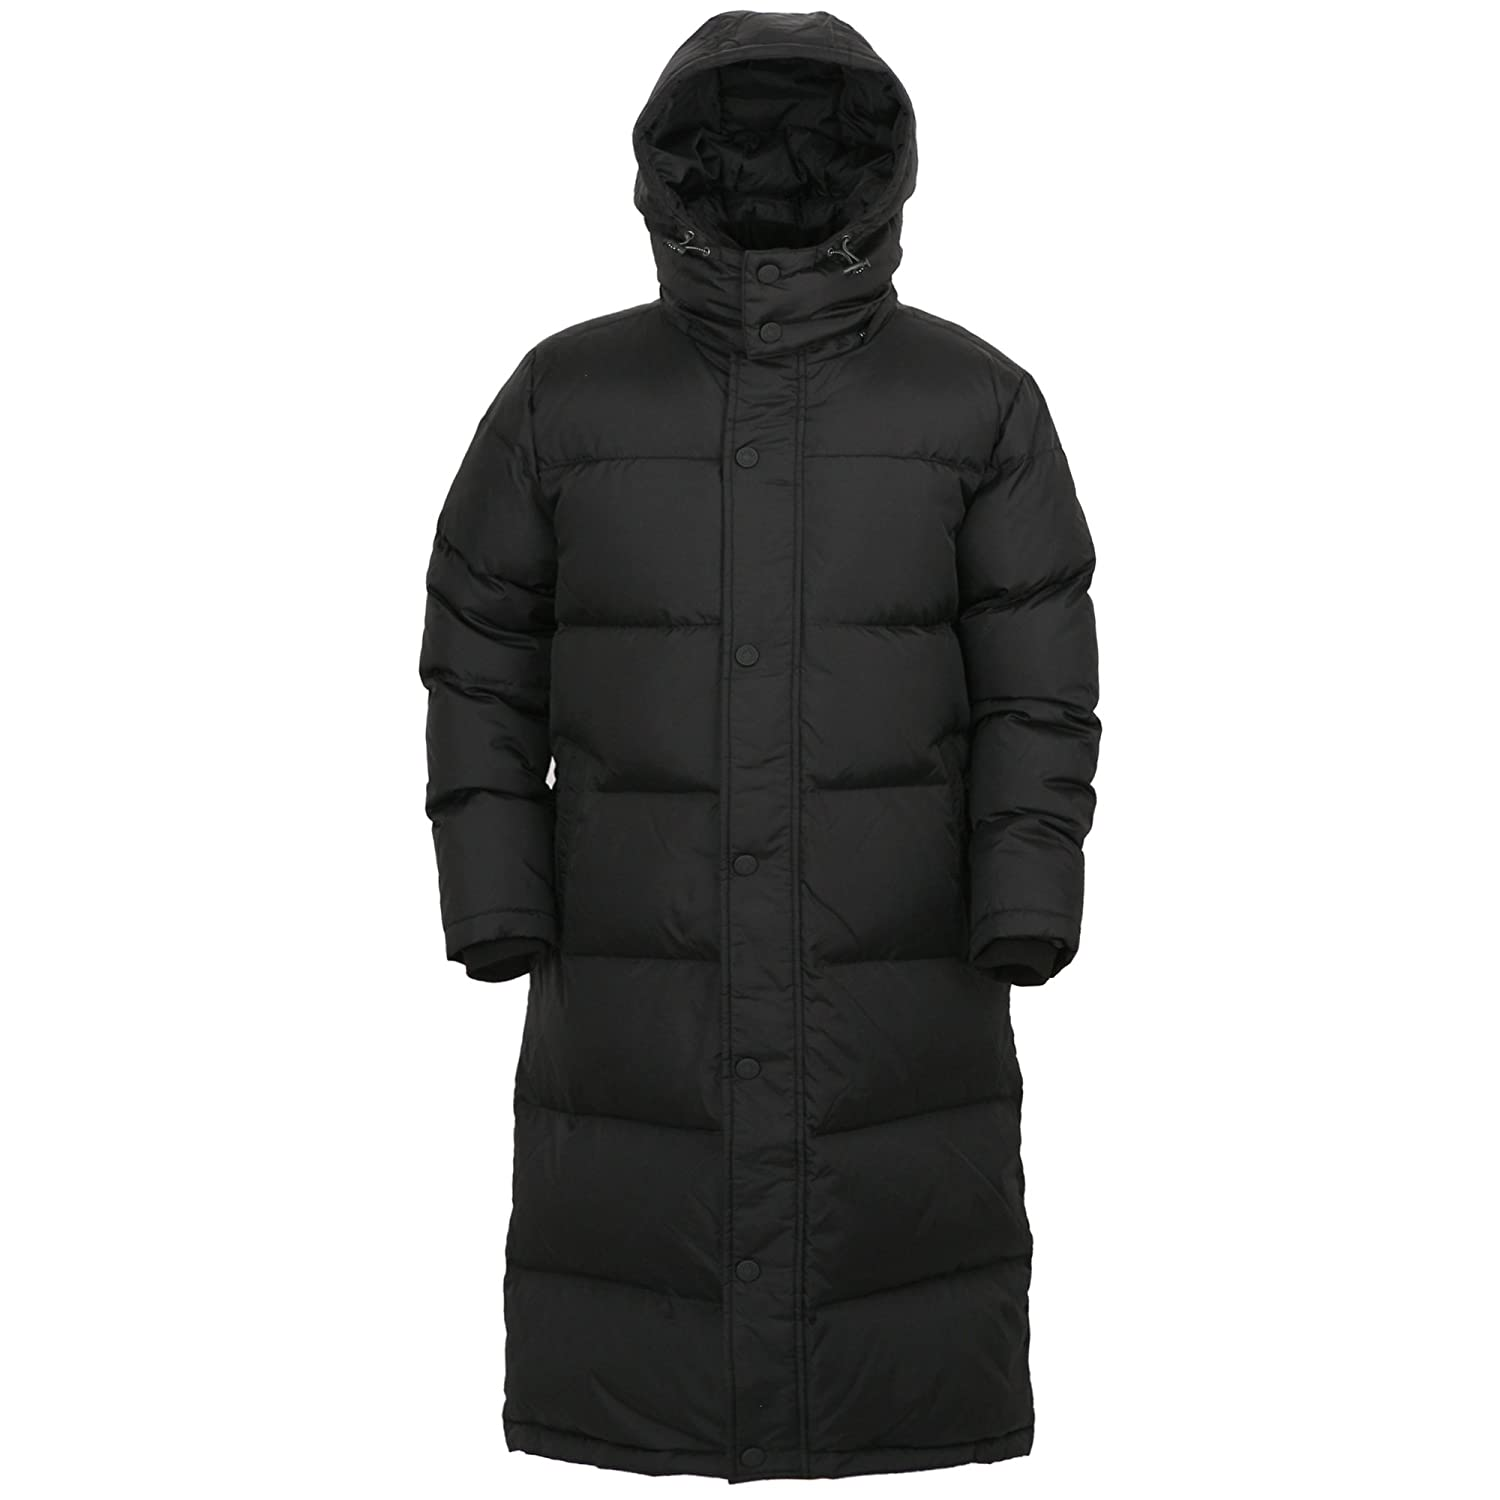 myglory77mall Black Winter Outer Duck Down Long Coat Parka Puffer jacket KH905